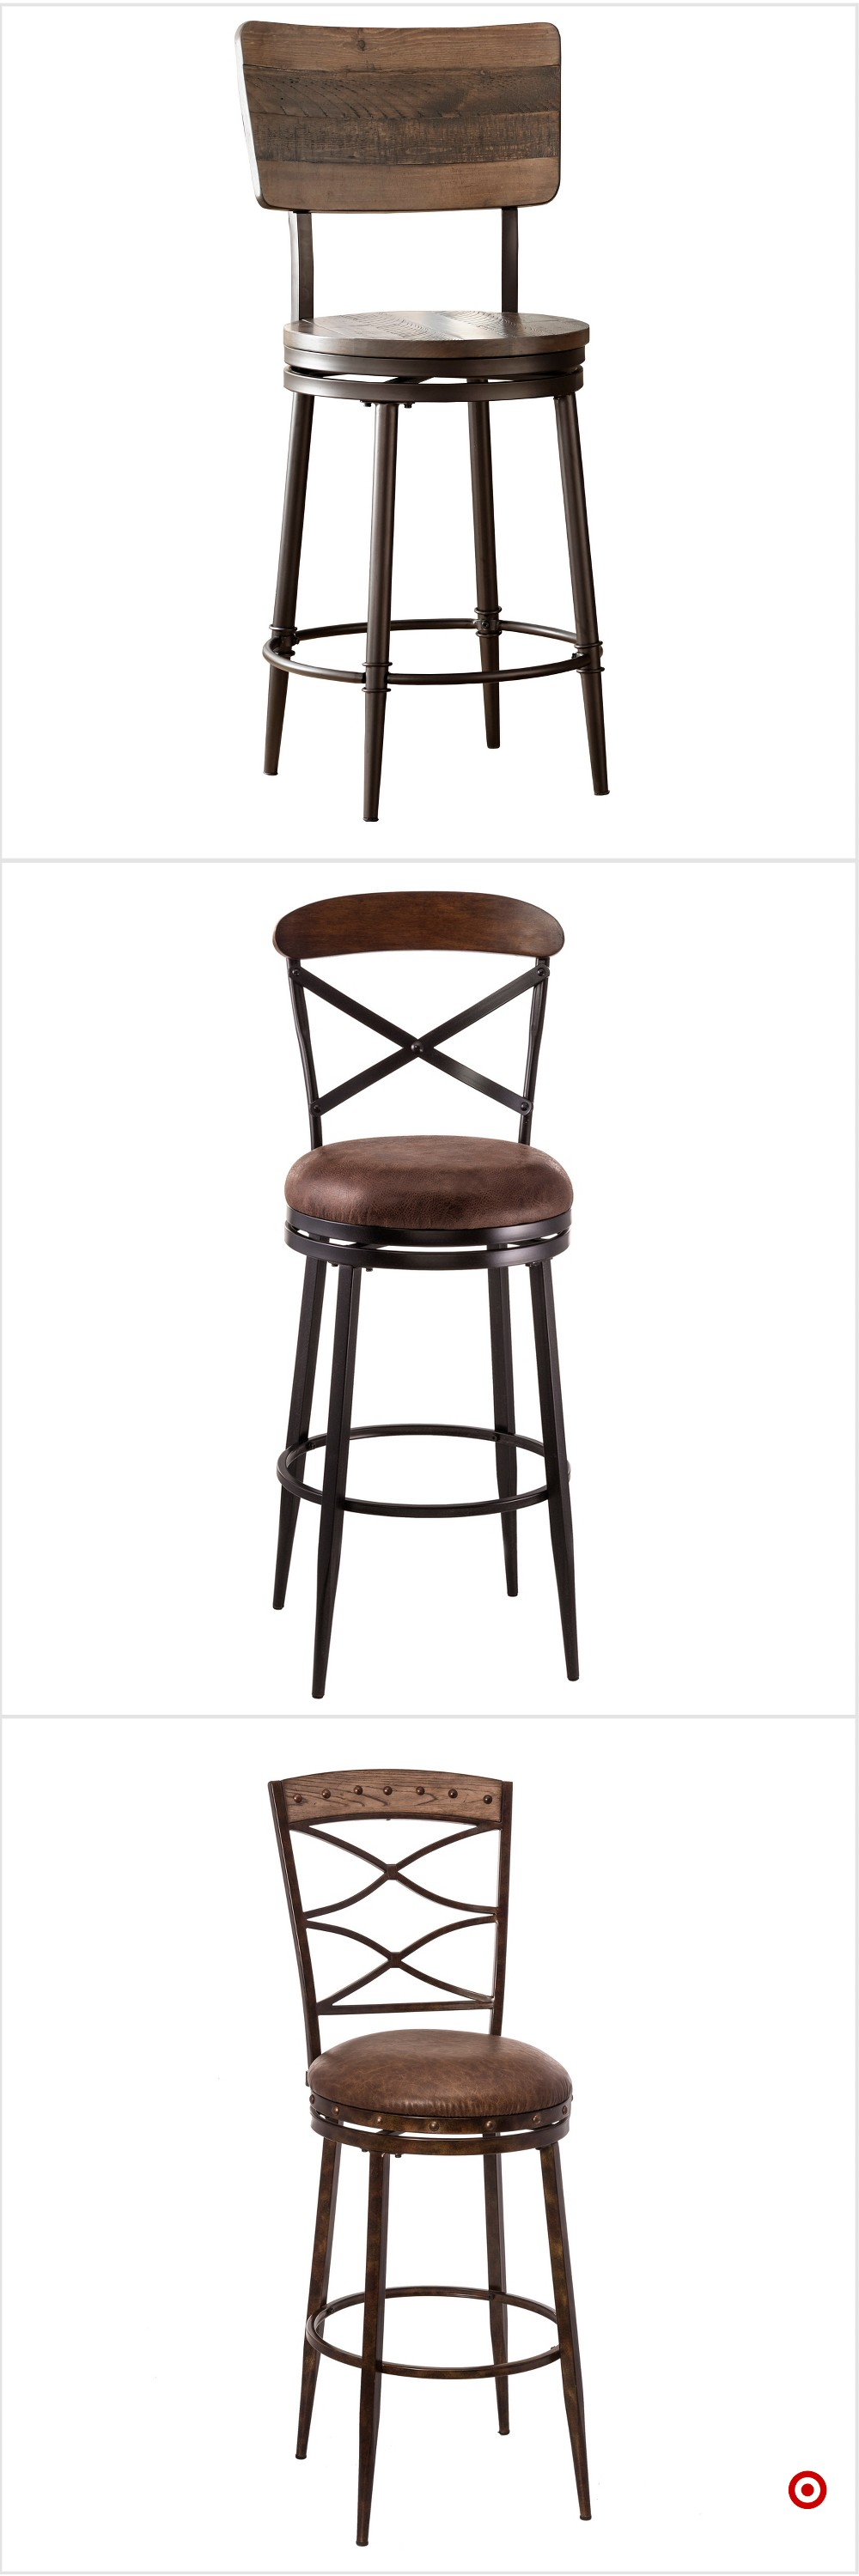 Shop Target For Extra Tall Stools You Will Love At Great Low Prices Free Shipping On Orders Of 35 Created By Ads Bulk Editor 10 23 2017